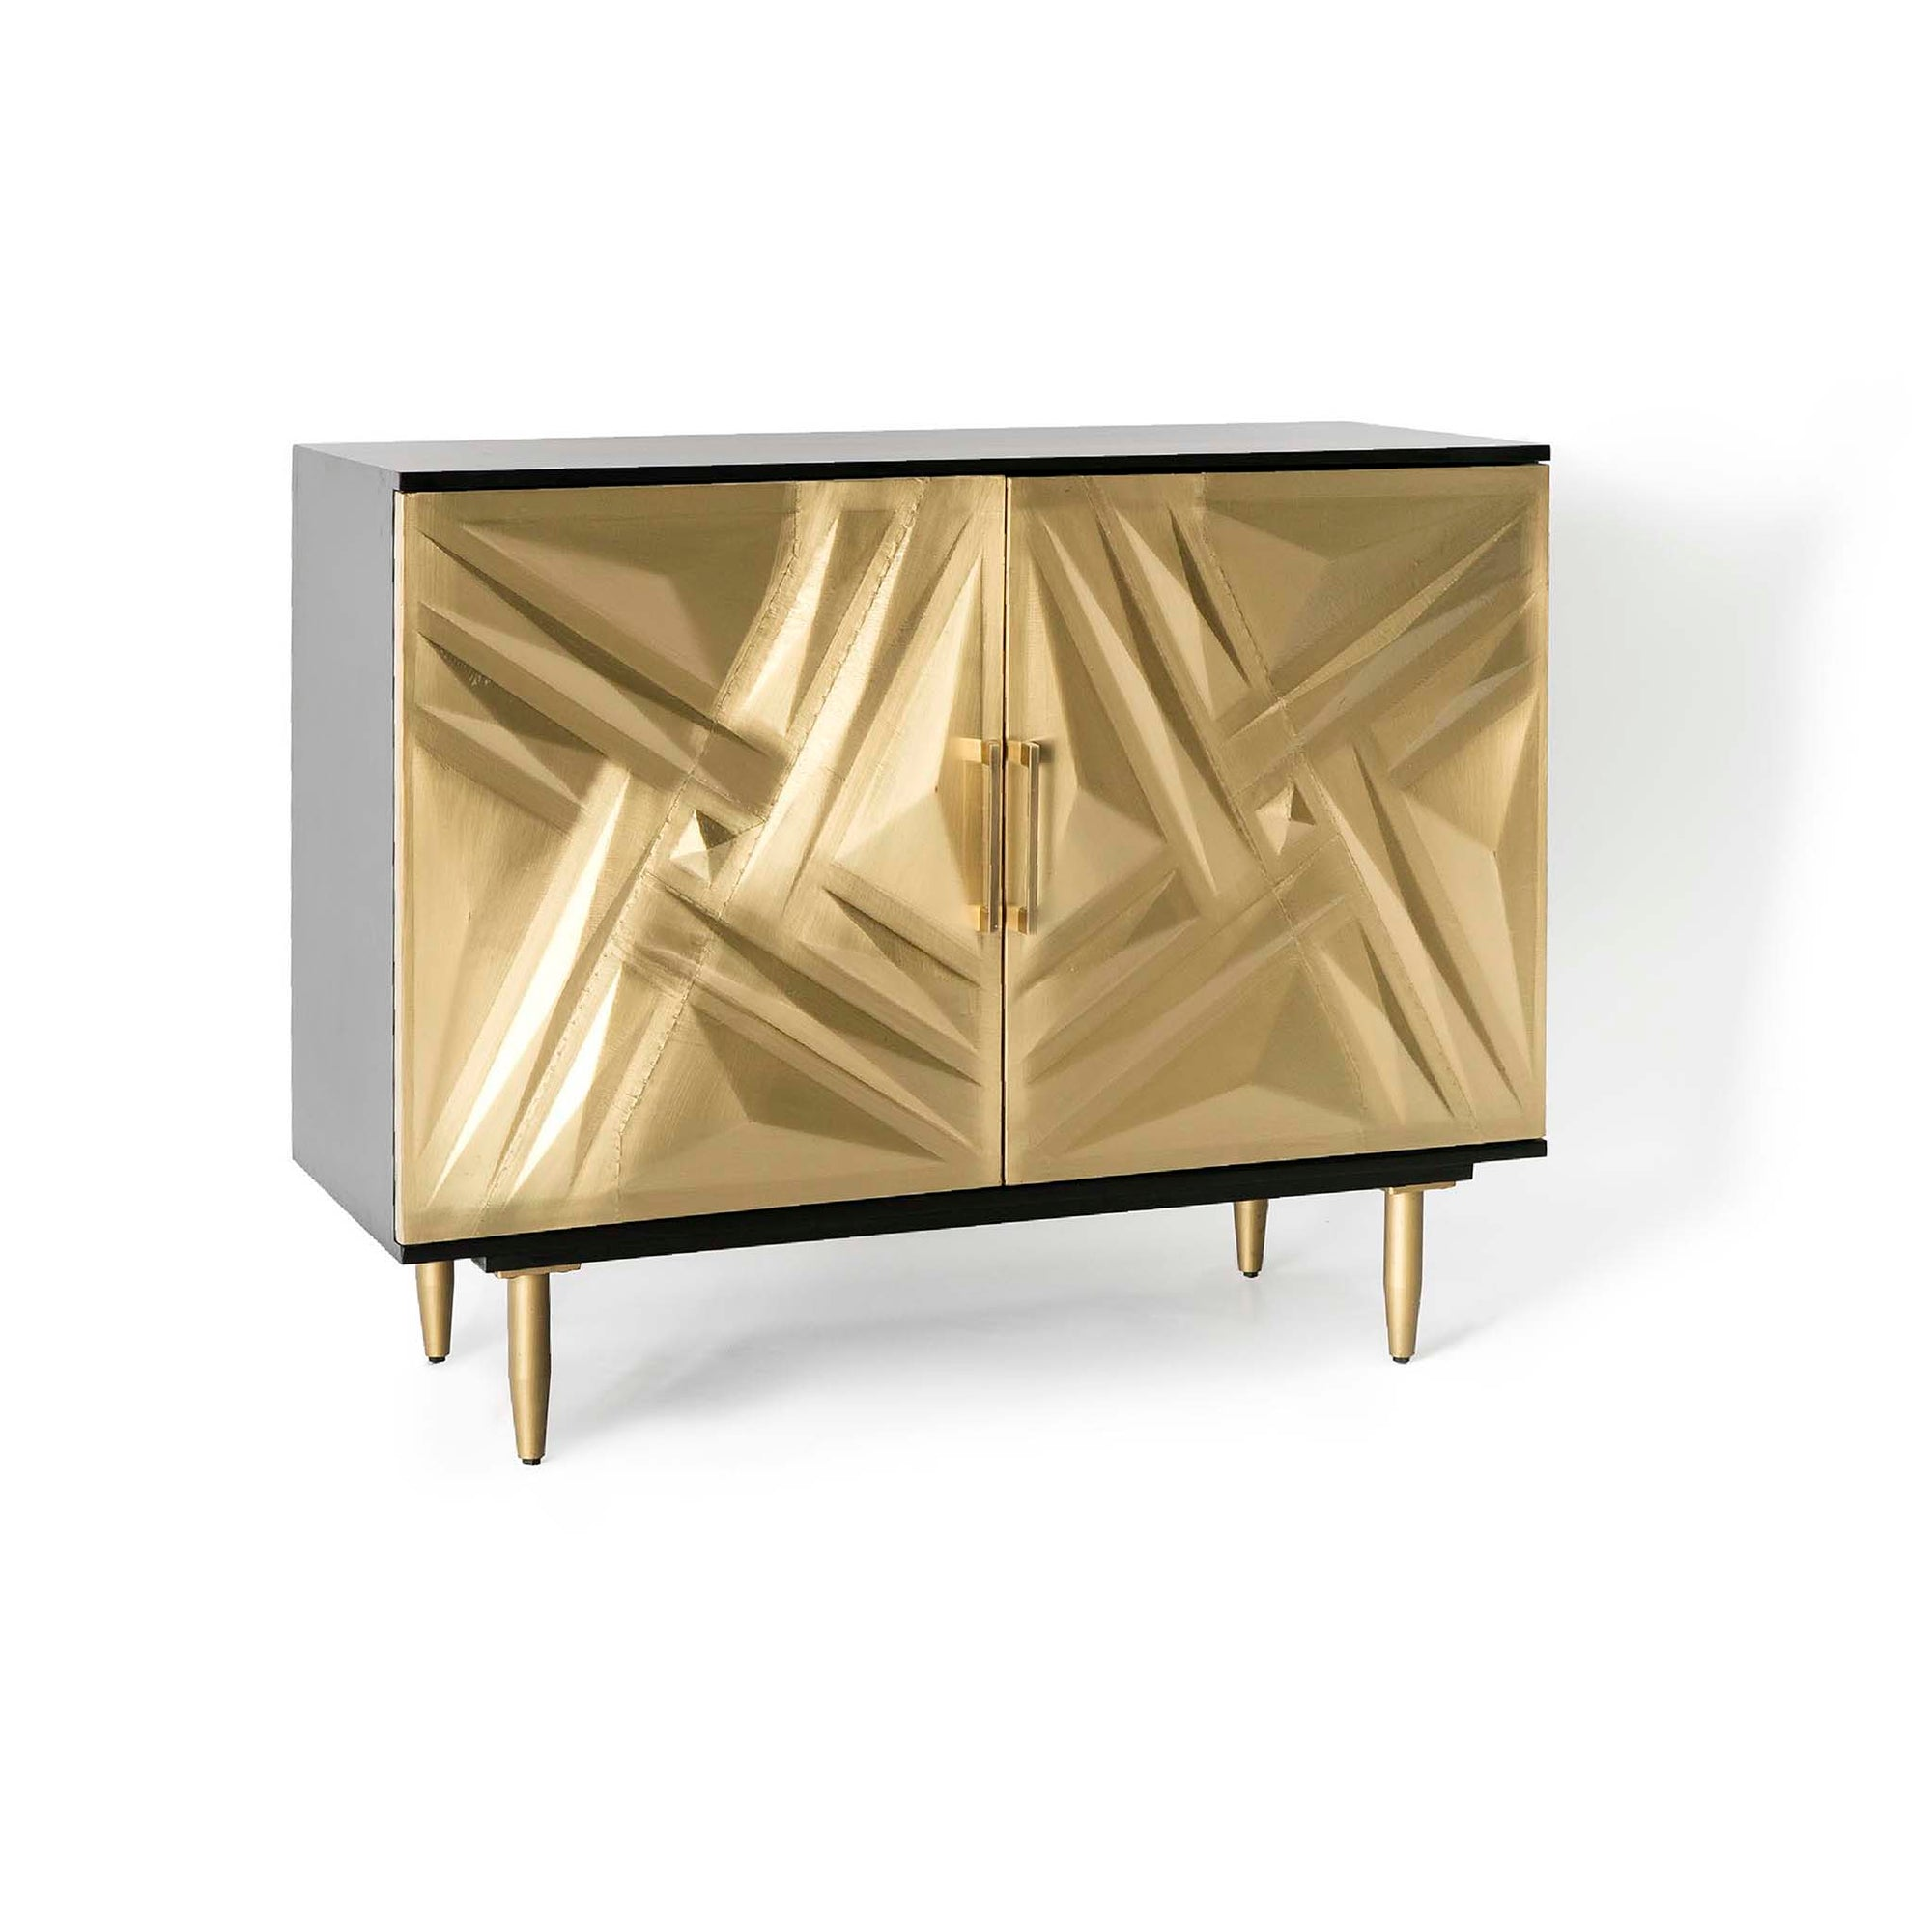 Kandla Gold Metal Cladded Sideboard with Iron Base by Roseland Furniture